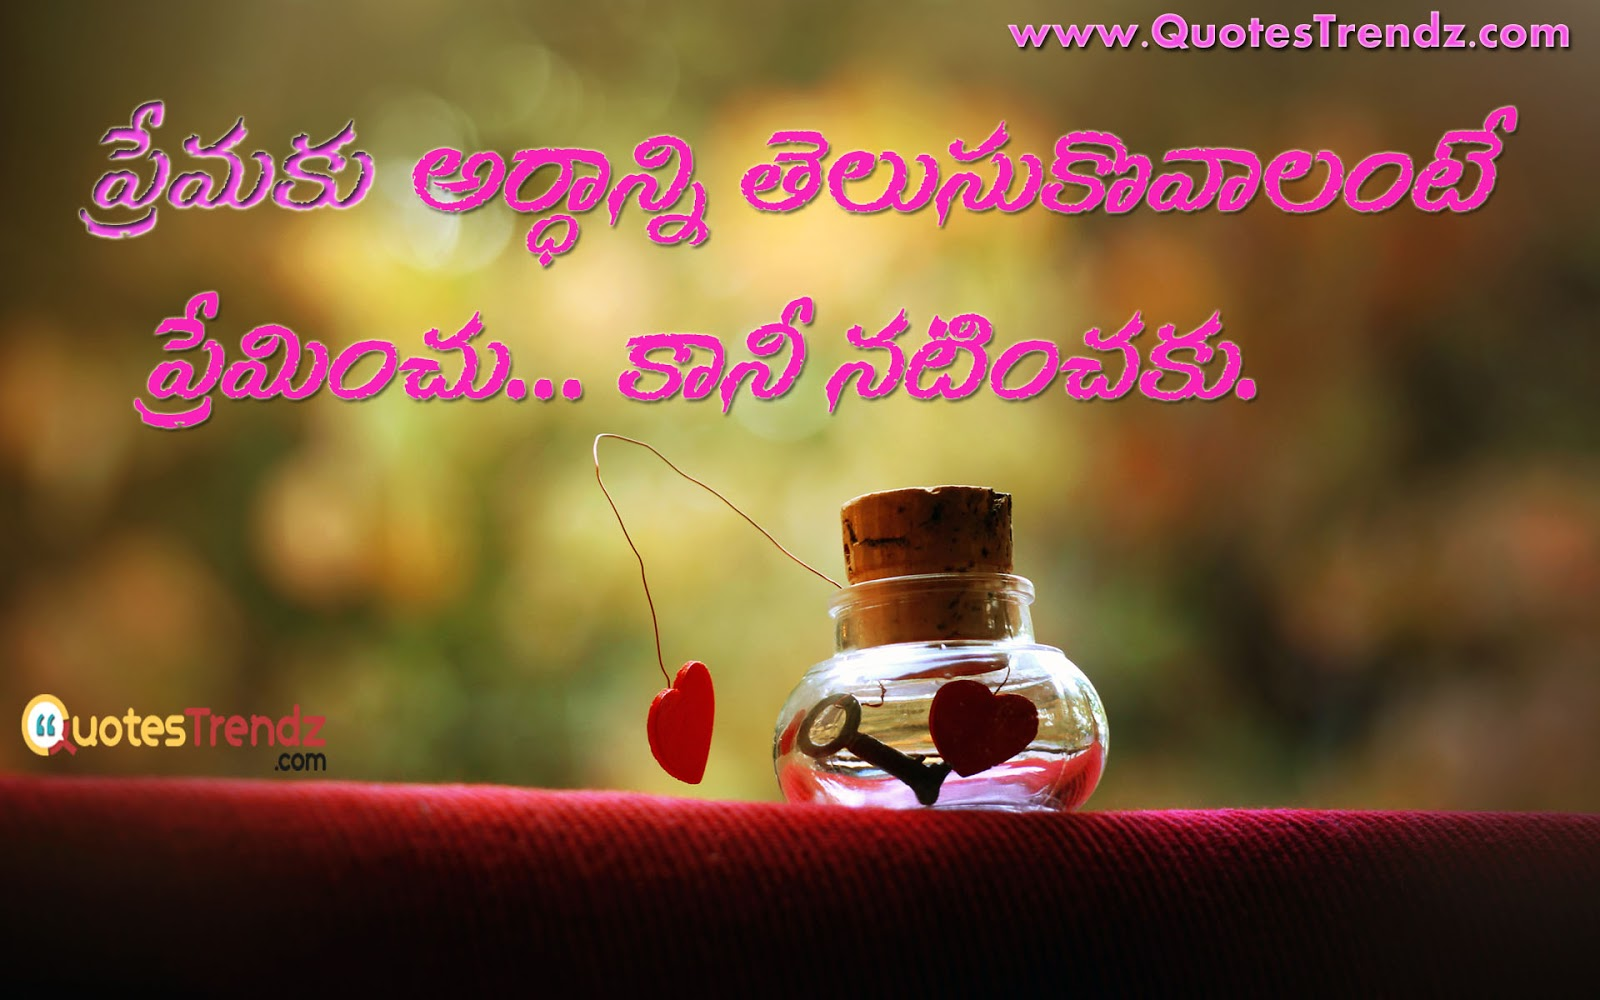 Telugu Love Quotes Brilliant Telugu Love Quotes  Quotestrendz